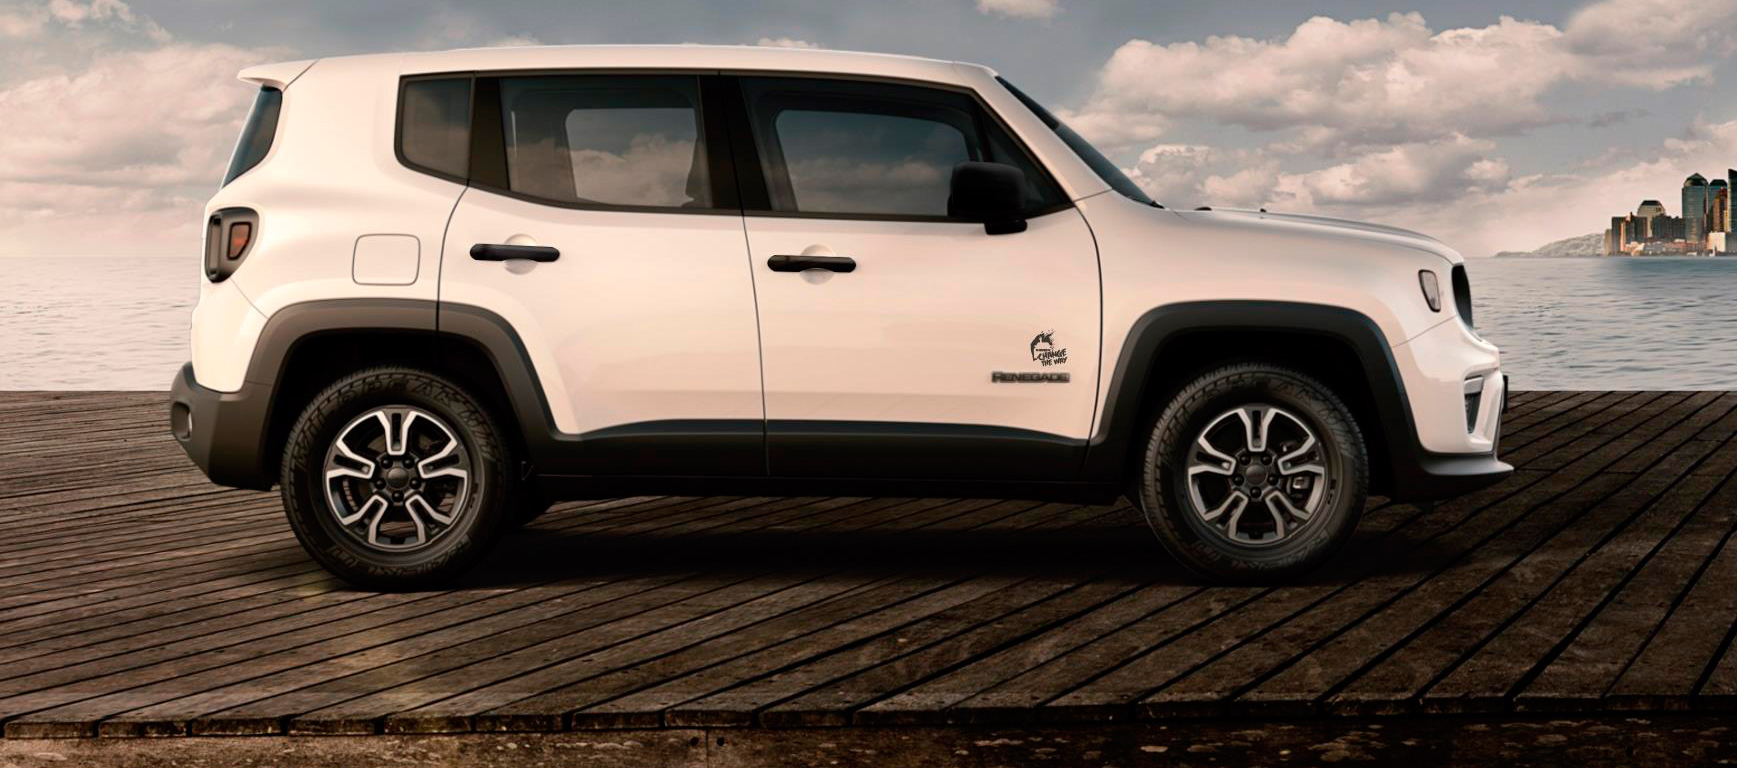 Change The Way, nueva Edición Especial del Jeep Renegade